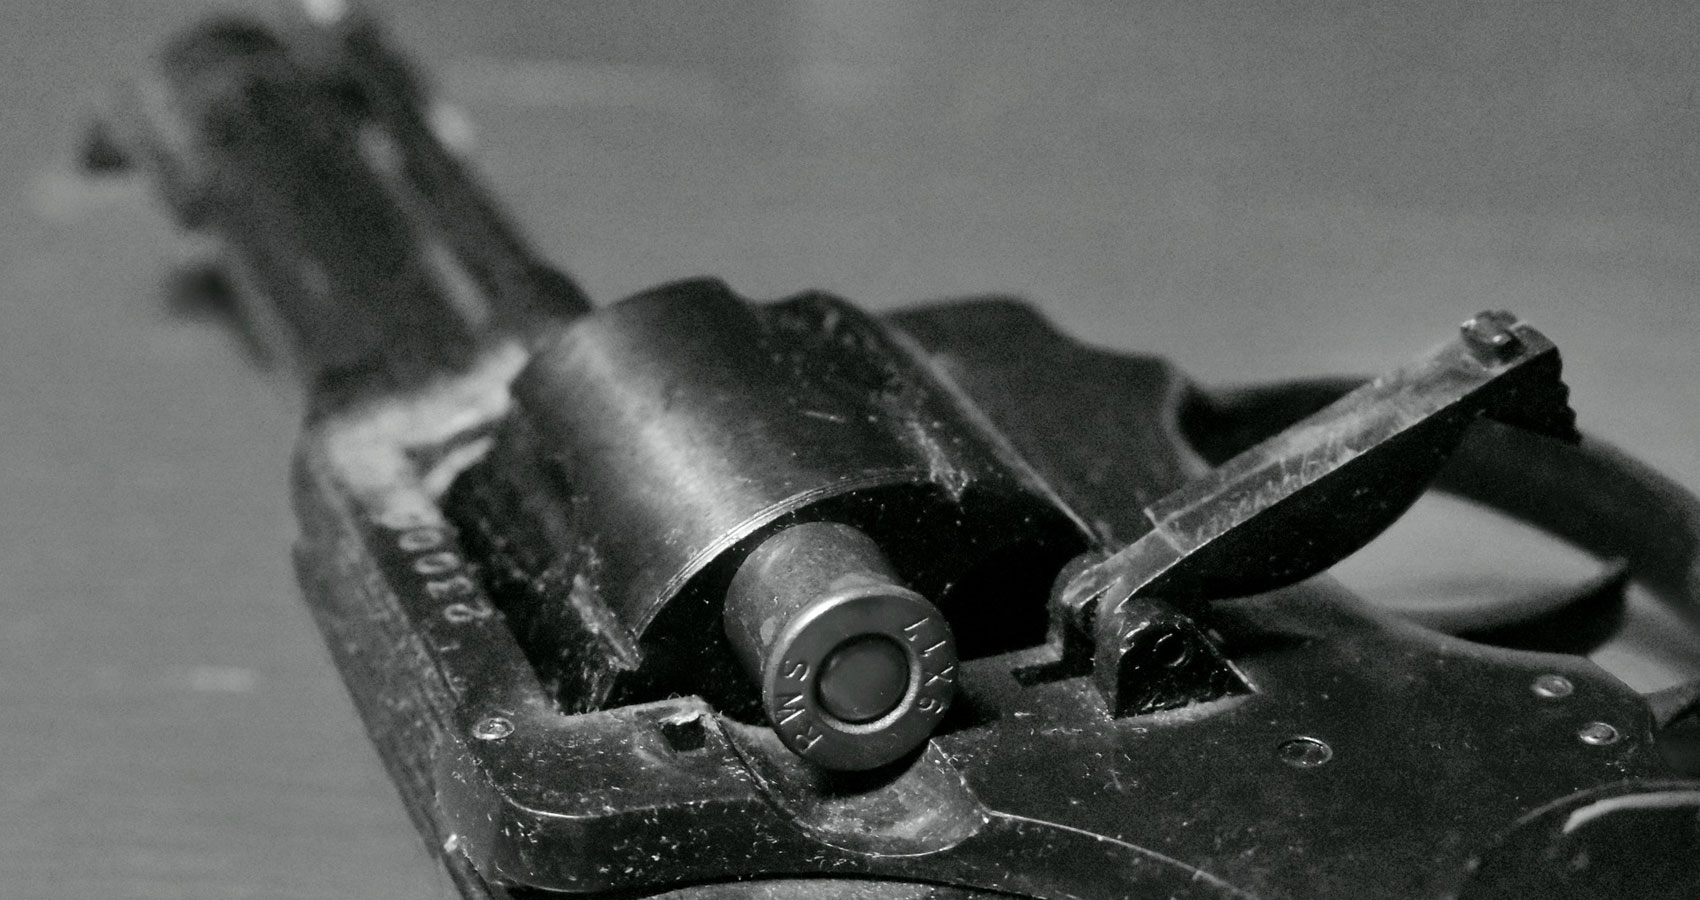 Russian Roulette, a poem written by Andrew Ndambuki at Spillwords.com